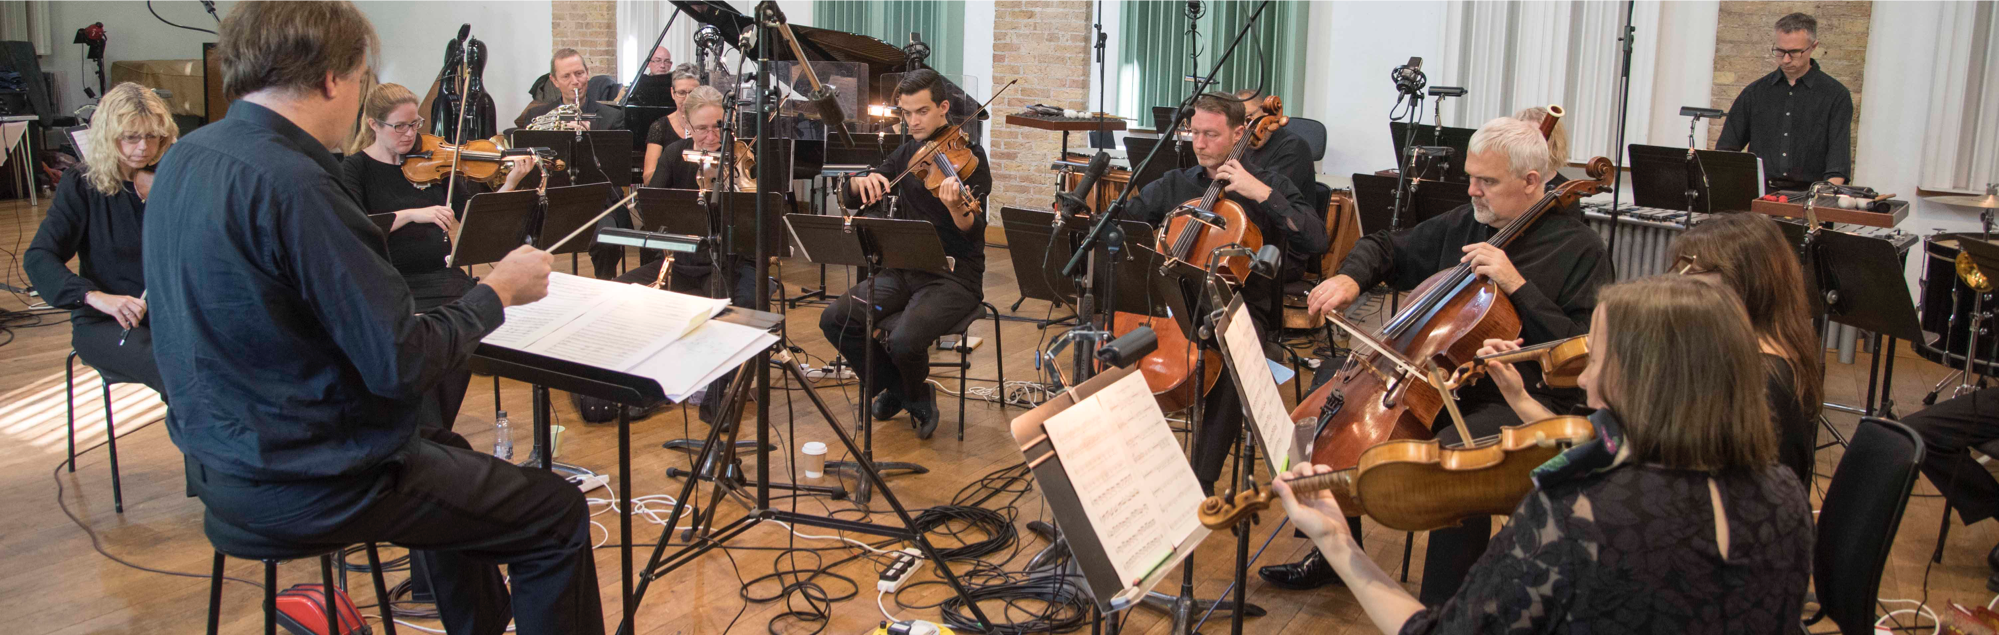 New Music Players conducted by Nicholas Smith. The Warehouse, London 28 Sept 2018